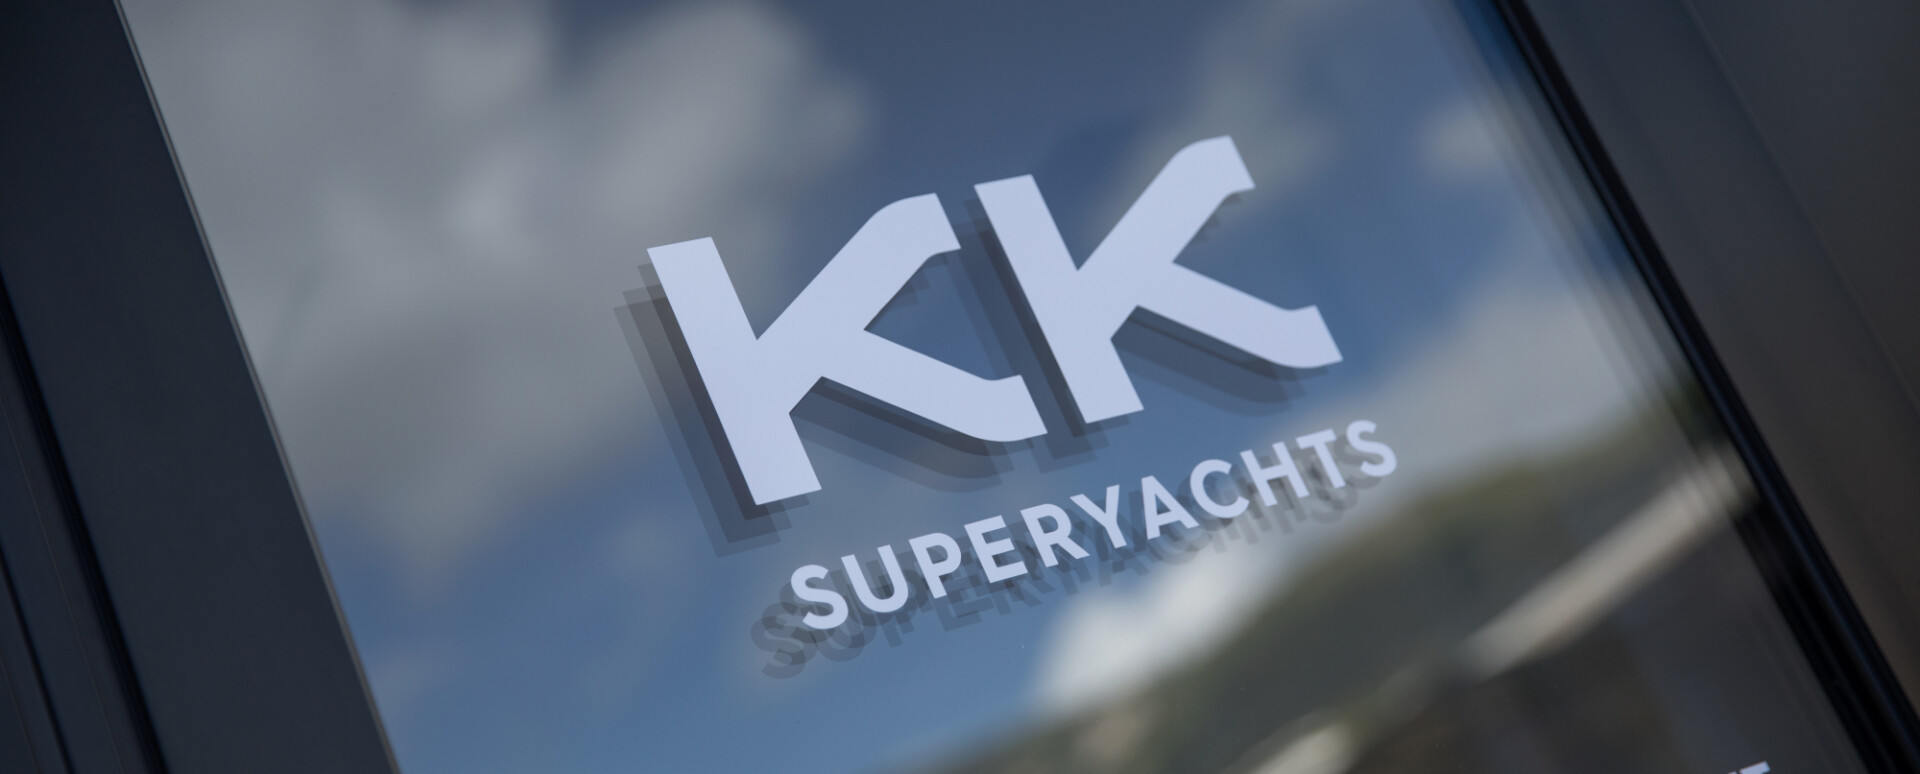 New turning point for KK Superyachts with two office locations in Monaco.